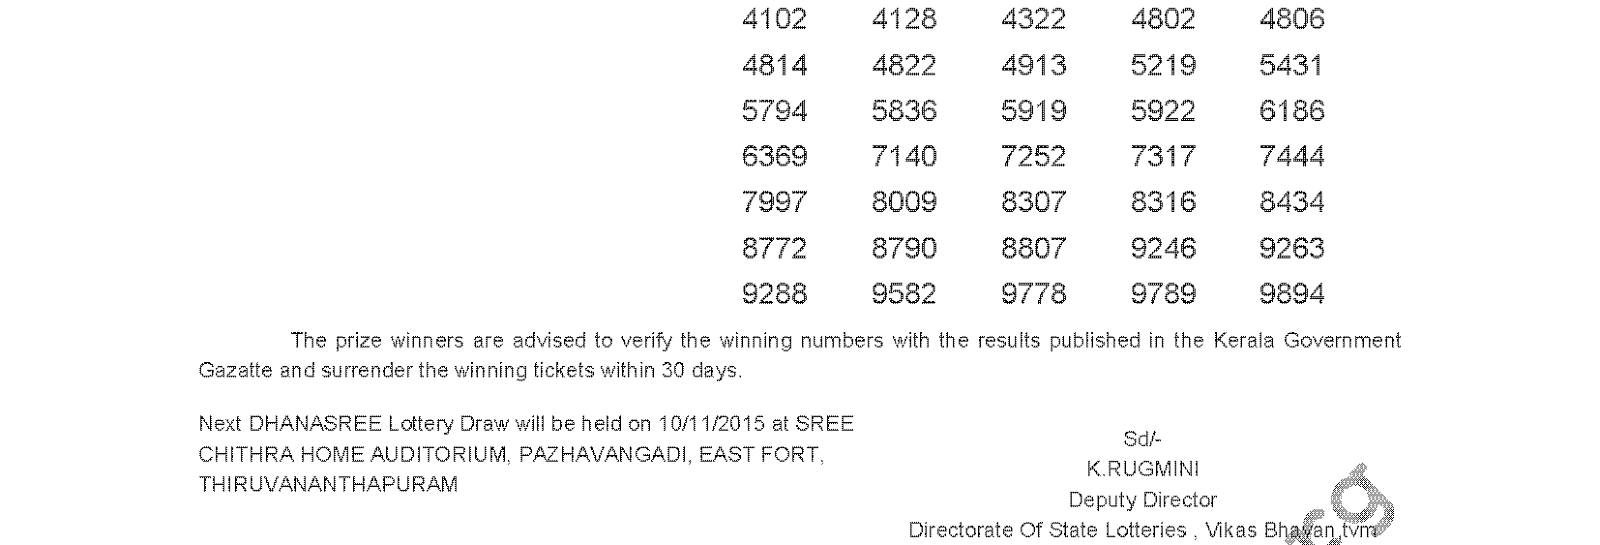 DHANASREE Lottery DS 210 Result 3-11-2015